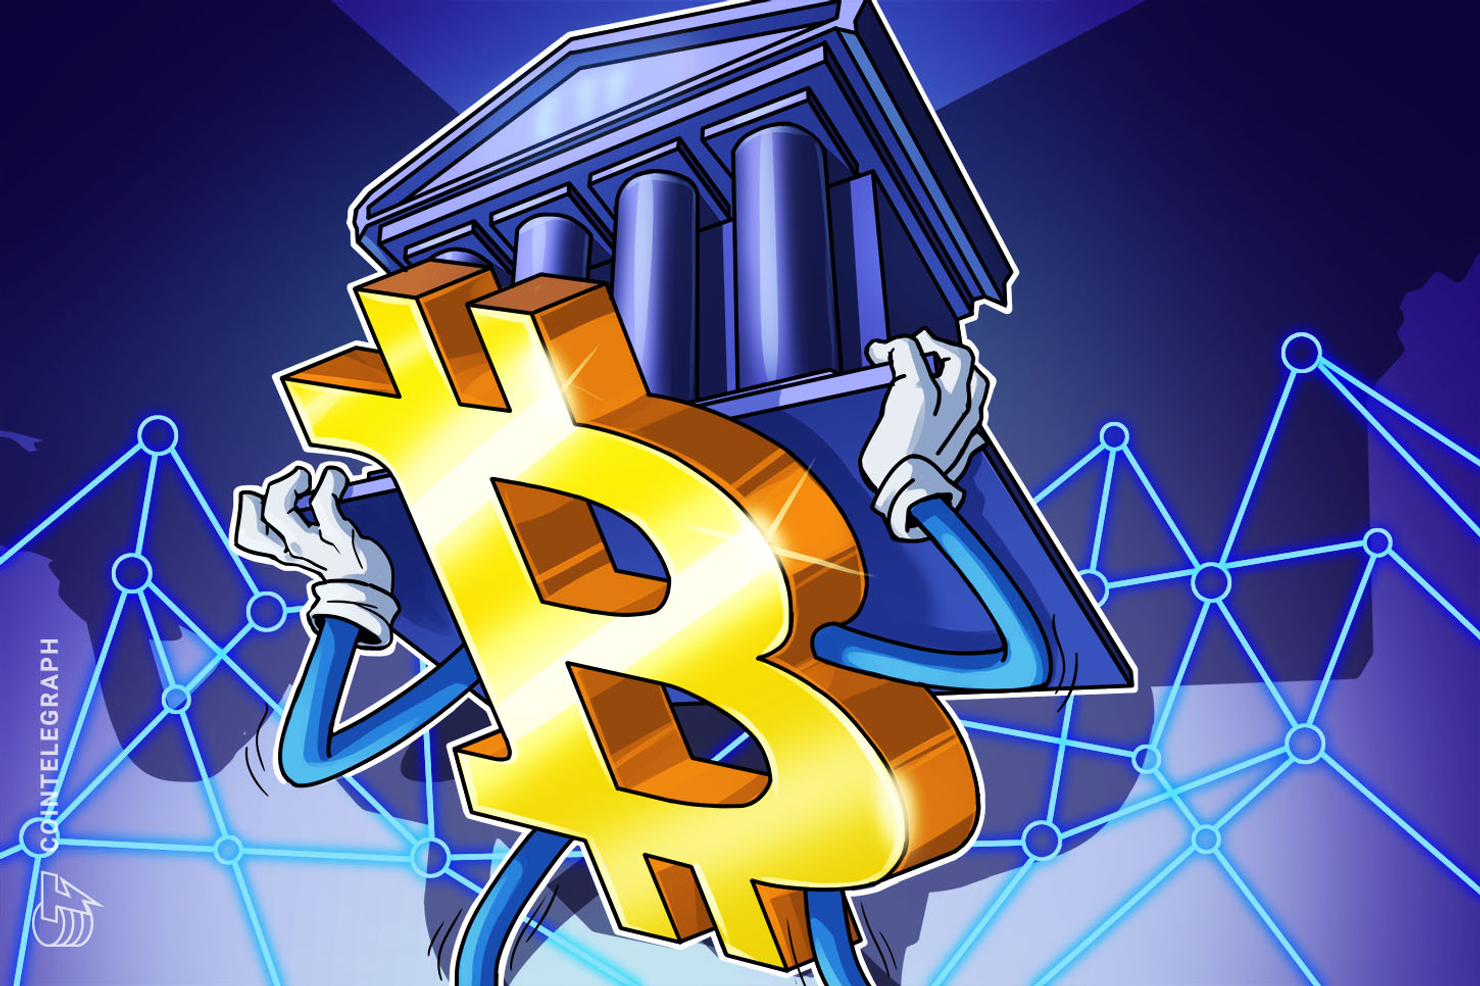 Bitcoin Simply Existing Positively Impacts Monetary Policy: Research